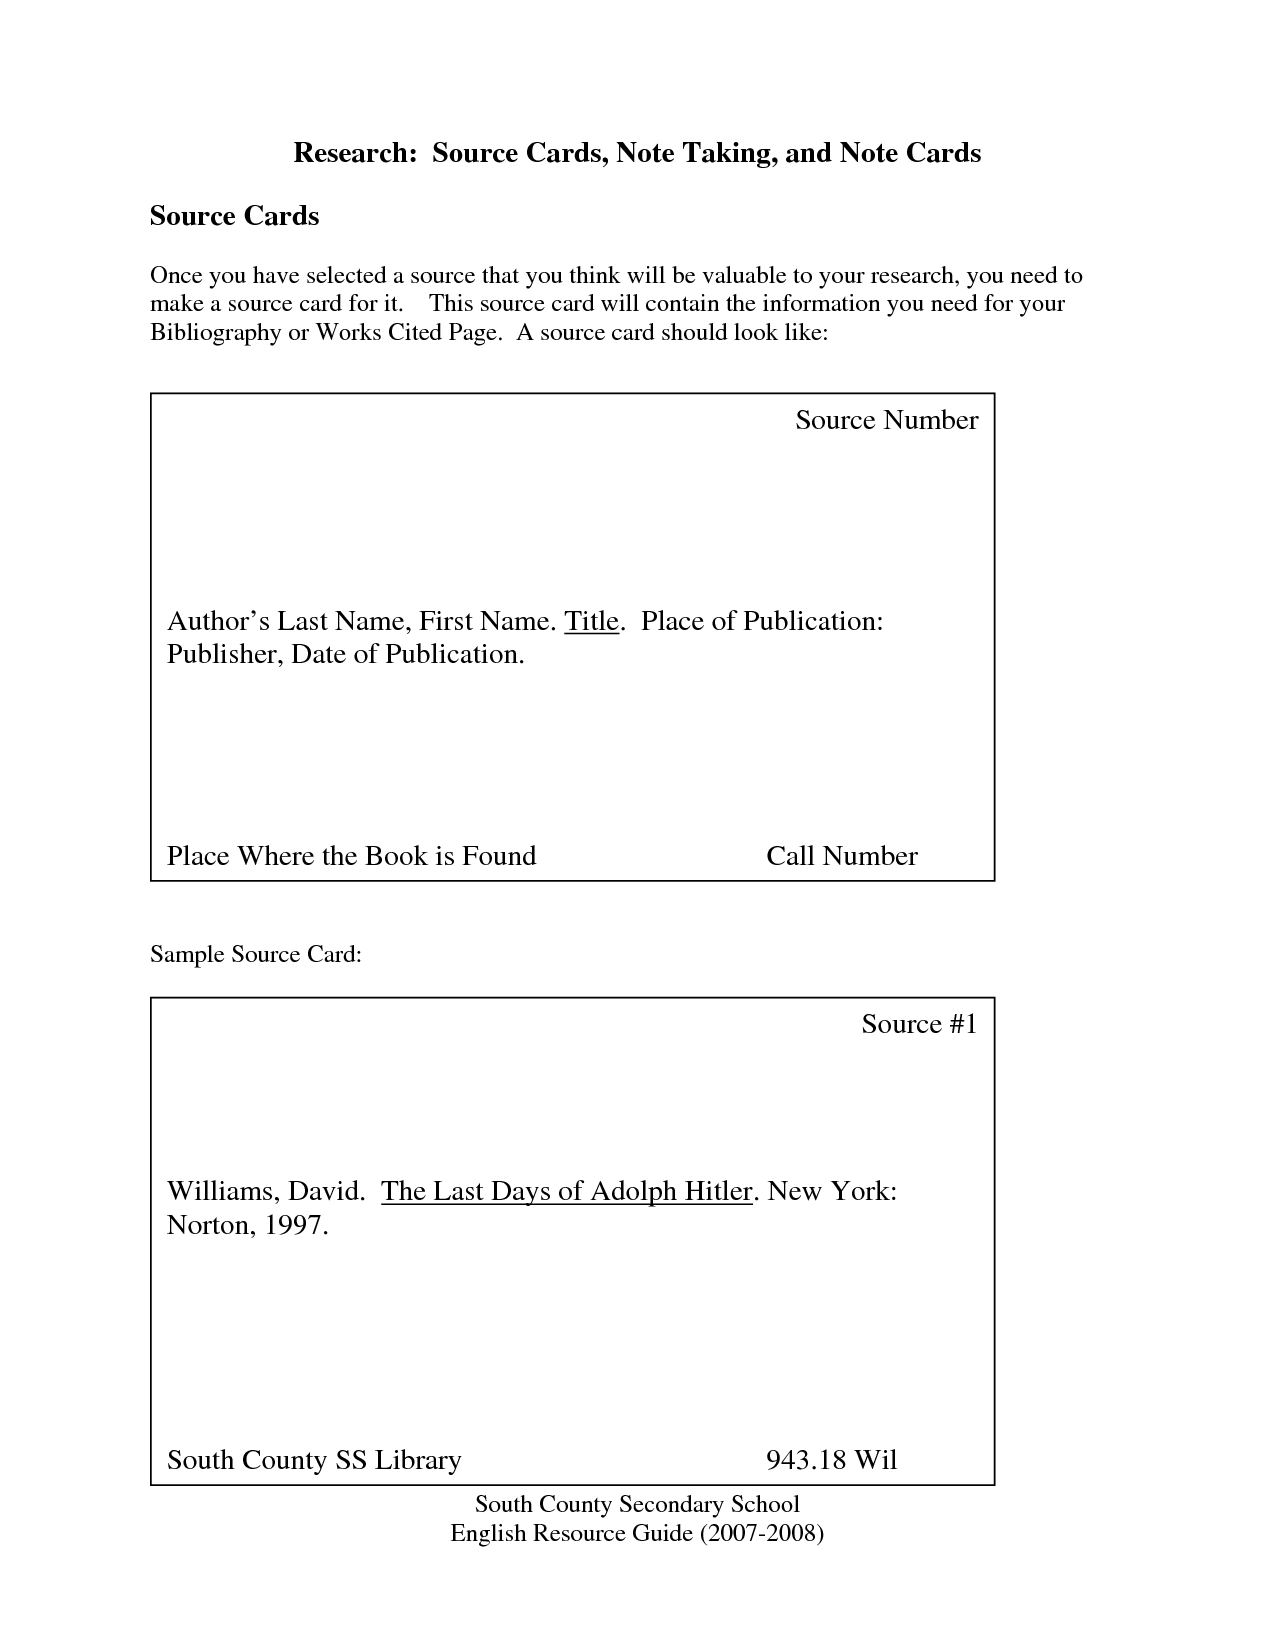 012 Research Paper Note Card Templates 442160 How To Do Notecards For Staggering A Mla Make Full